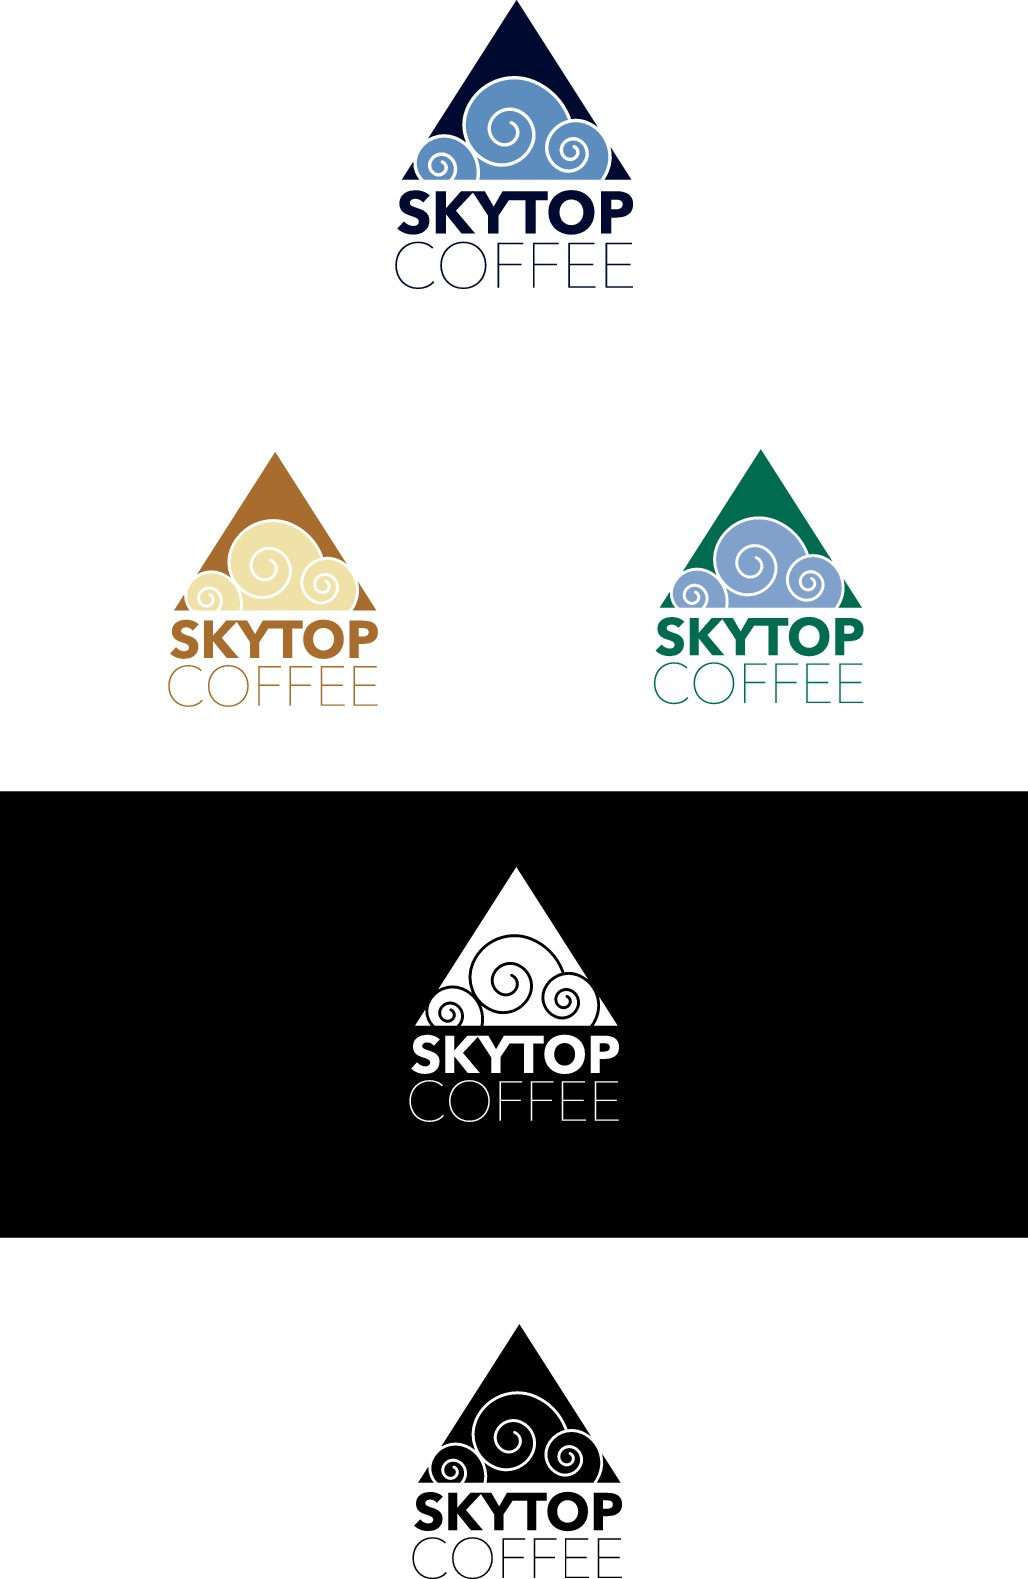 SkyTop Coffee needs a memorable logo for our start up!